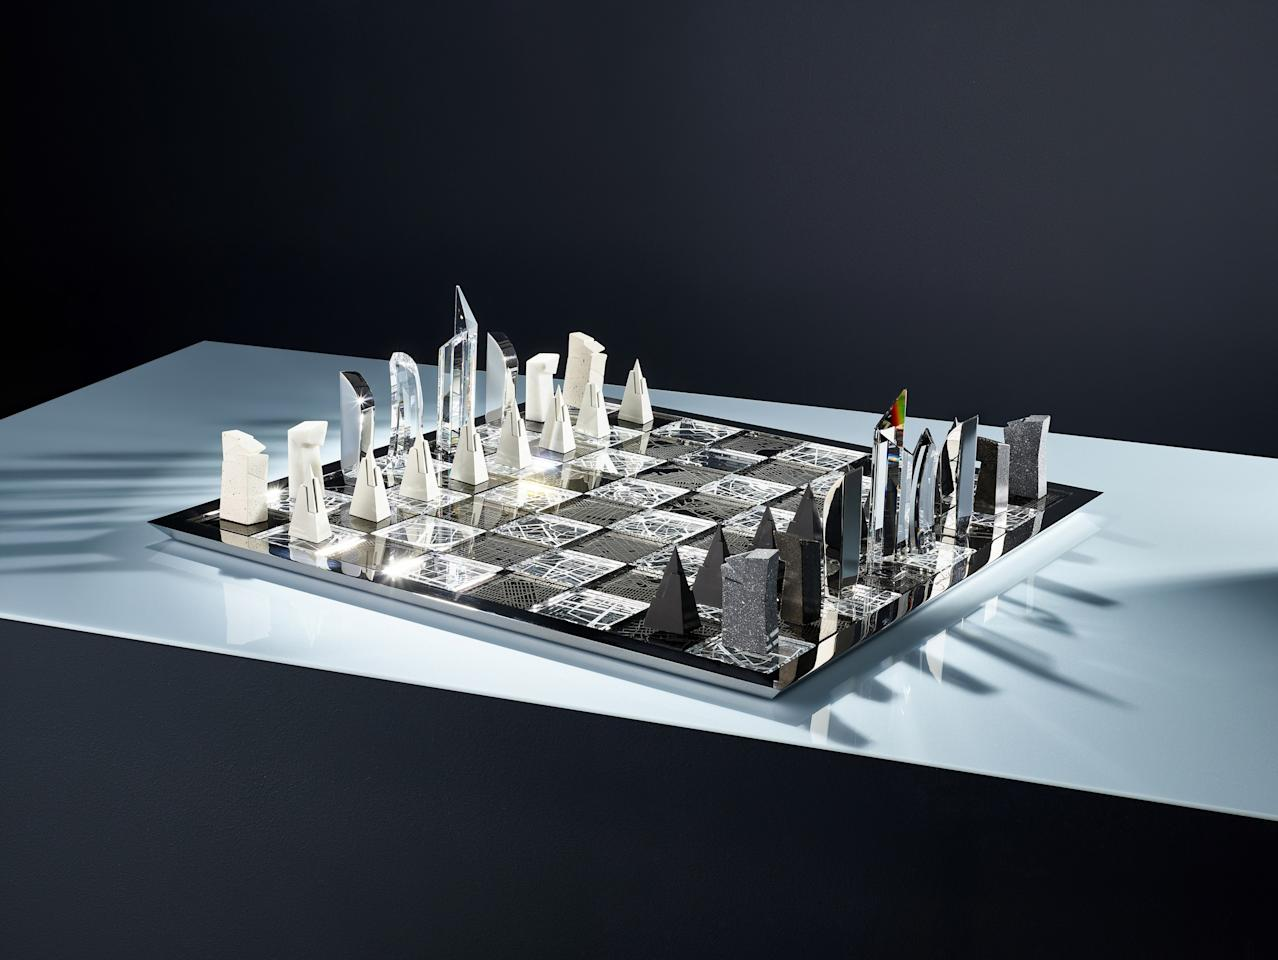 "Architect Daniel Liebeskind's <a href=""https://www.atelierswarovski.com/architecture-the-city-chess-set-monochrome"">Architecture & the City</a> chess set for Atelier Swarovski reinterprets the skylines of New York and Milan. Liebeskind mixed a number of materials, including concrete, marble, aluminum, silver, and Swarovski crystal, for the $18,000 set."